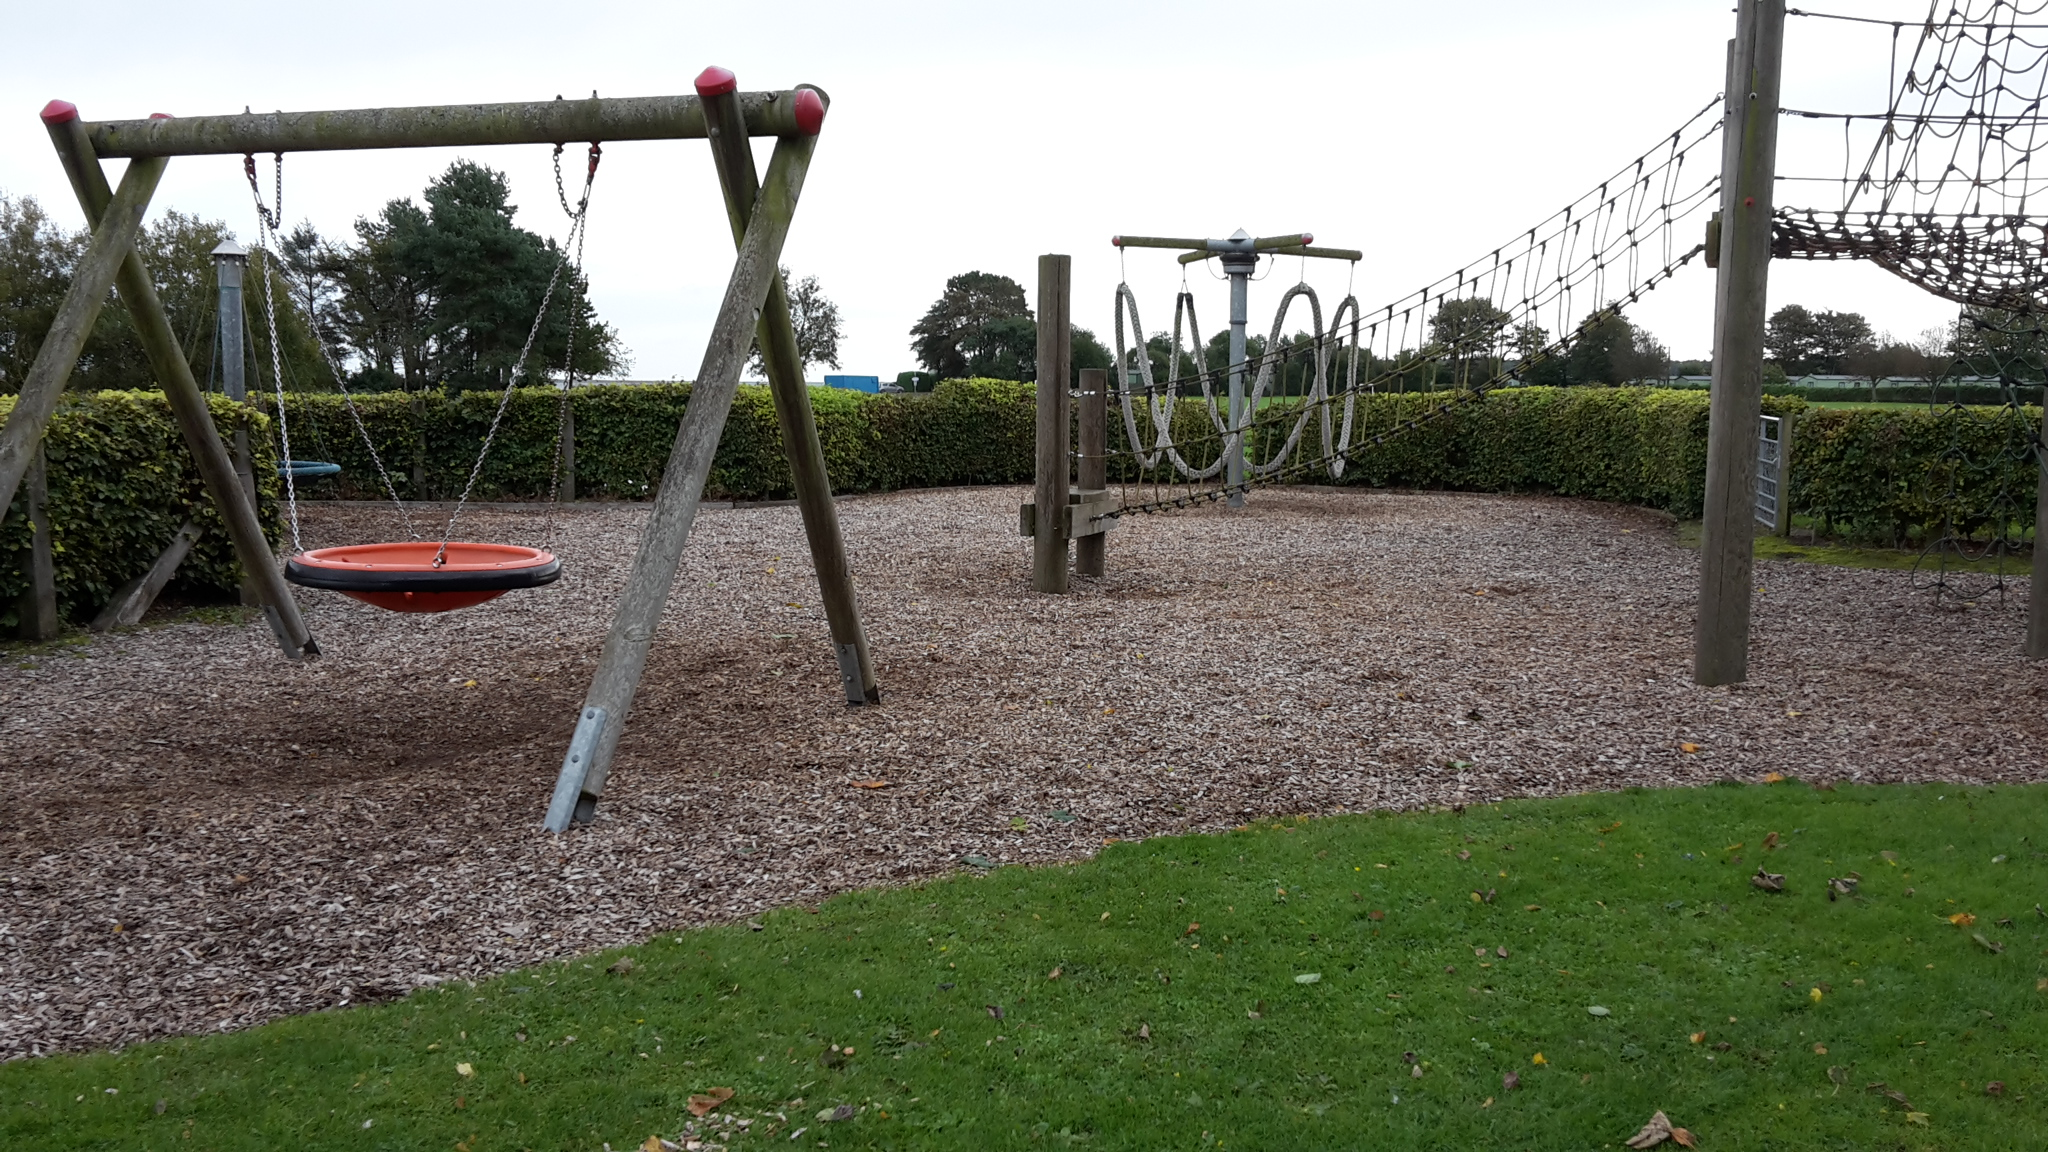 Play area with swing, cargo net and other play equipment on ground covered with wood chips and surrounded by hedges